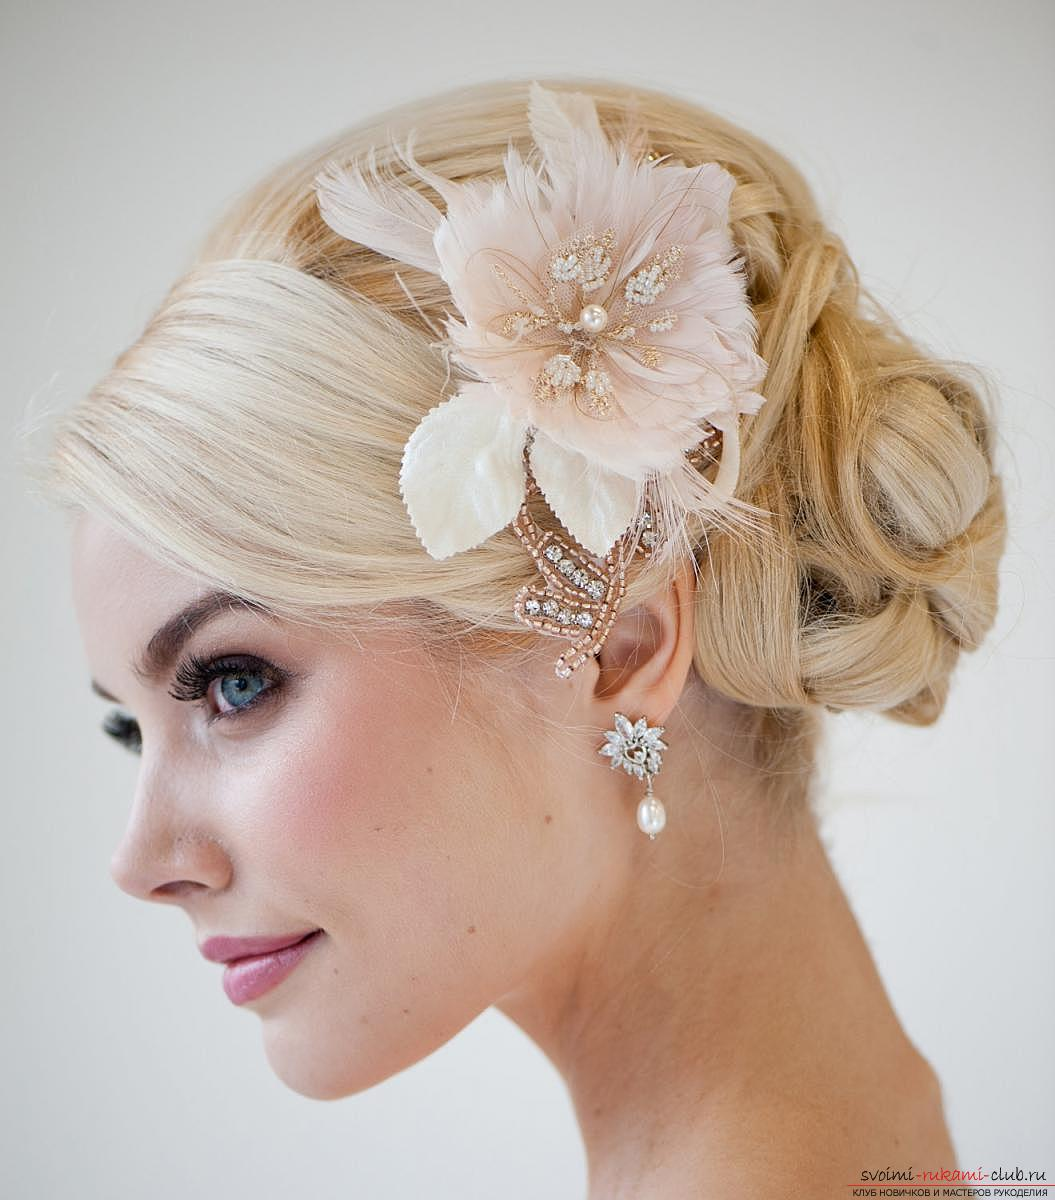 Photo gallery of wedding hairstyles for hair of different length. Photo №4